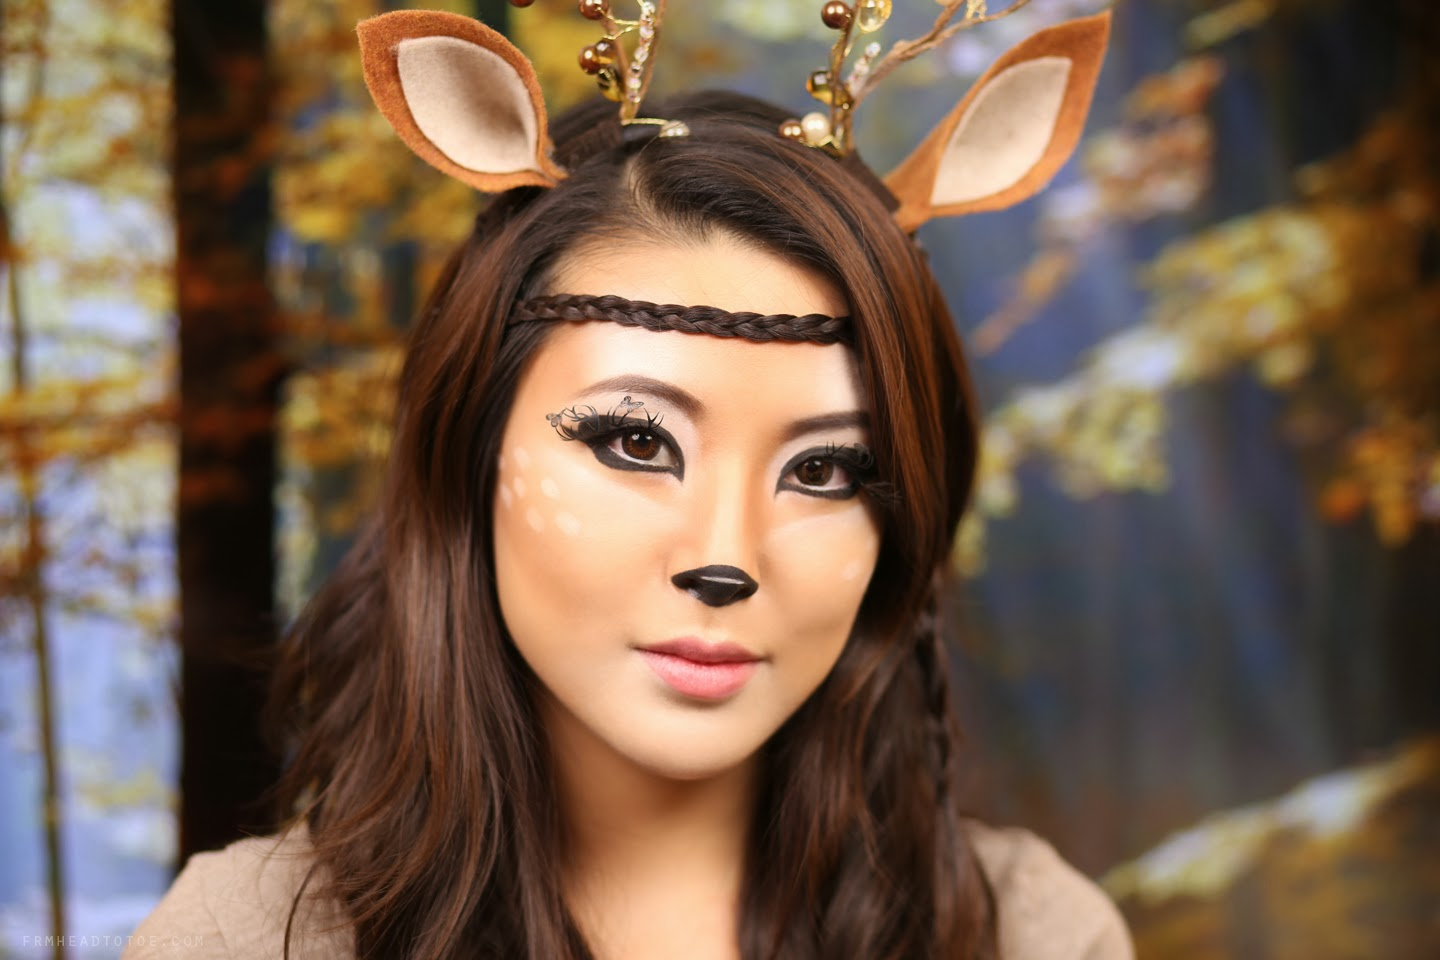 Deer Makeup Tutorial | Halloween 2013 - From Head To Toe